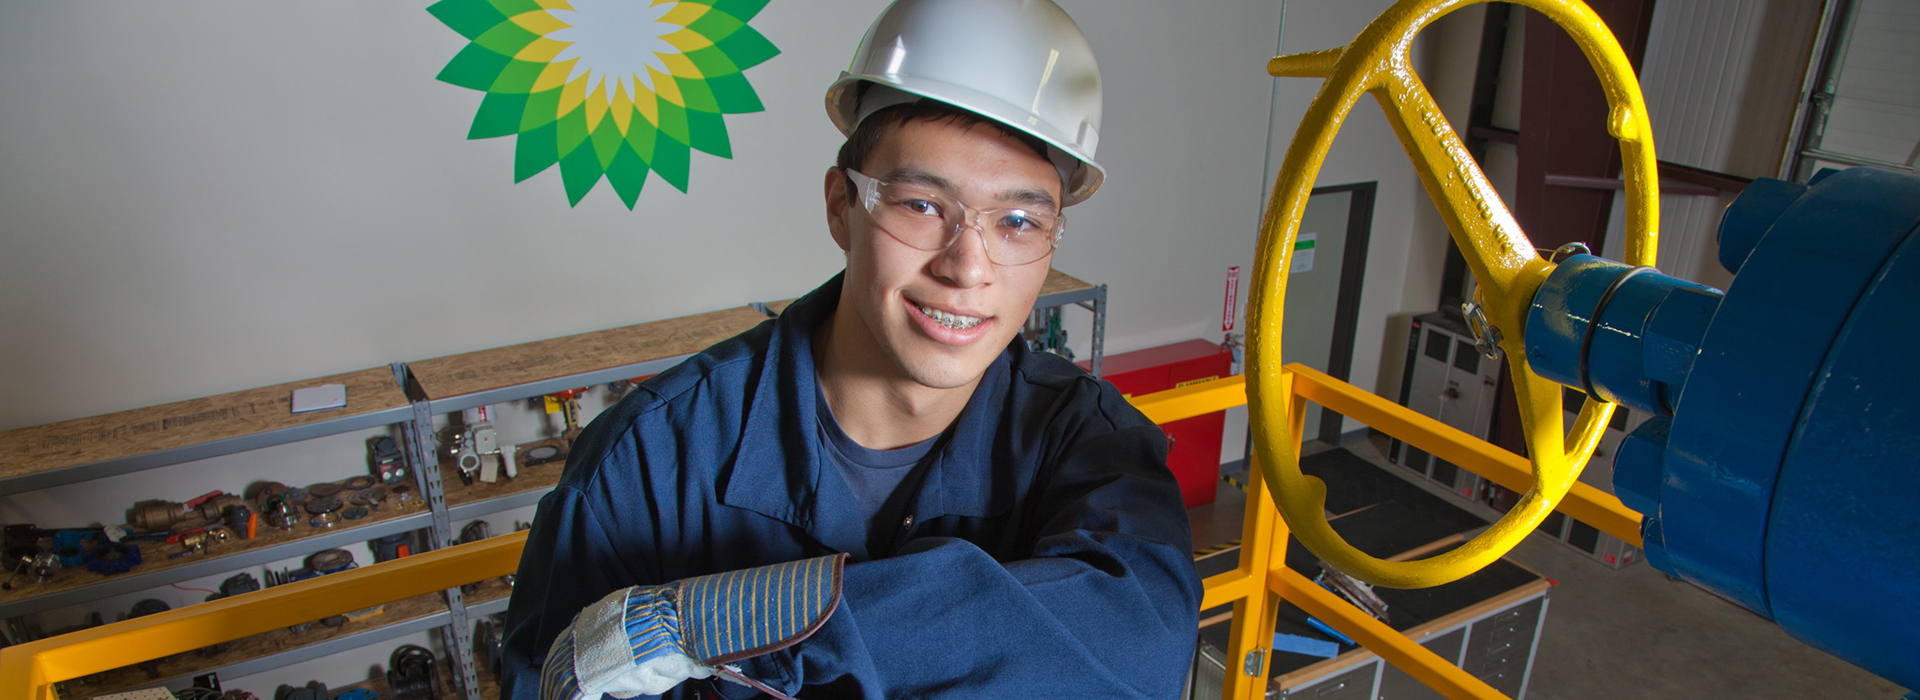 Petroleum Engineering and Process Technology major, Stefan Weingarth, opens a valve on the oil field well head at CTC's process technology facility on Van Horn Road. The working well head was part of a donation worth almost $4 million made by BP. Credit: UAF Photo by Todd Paris